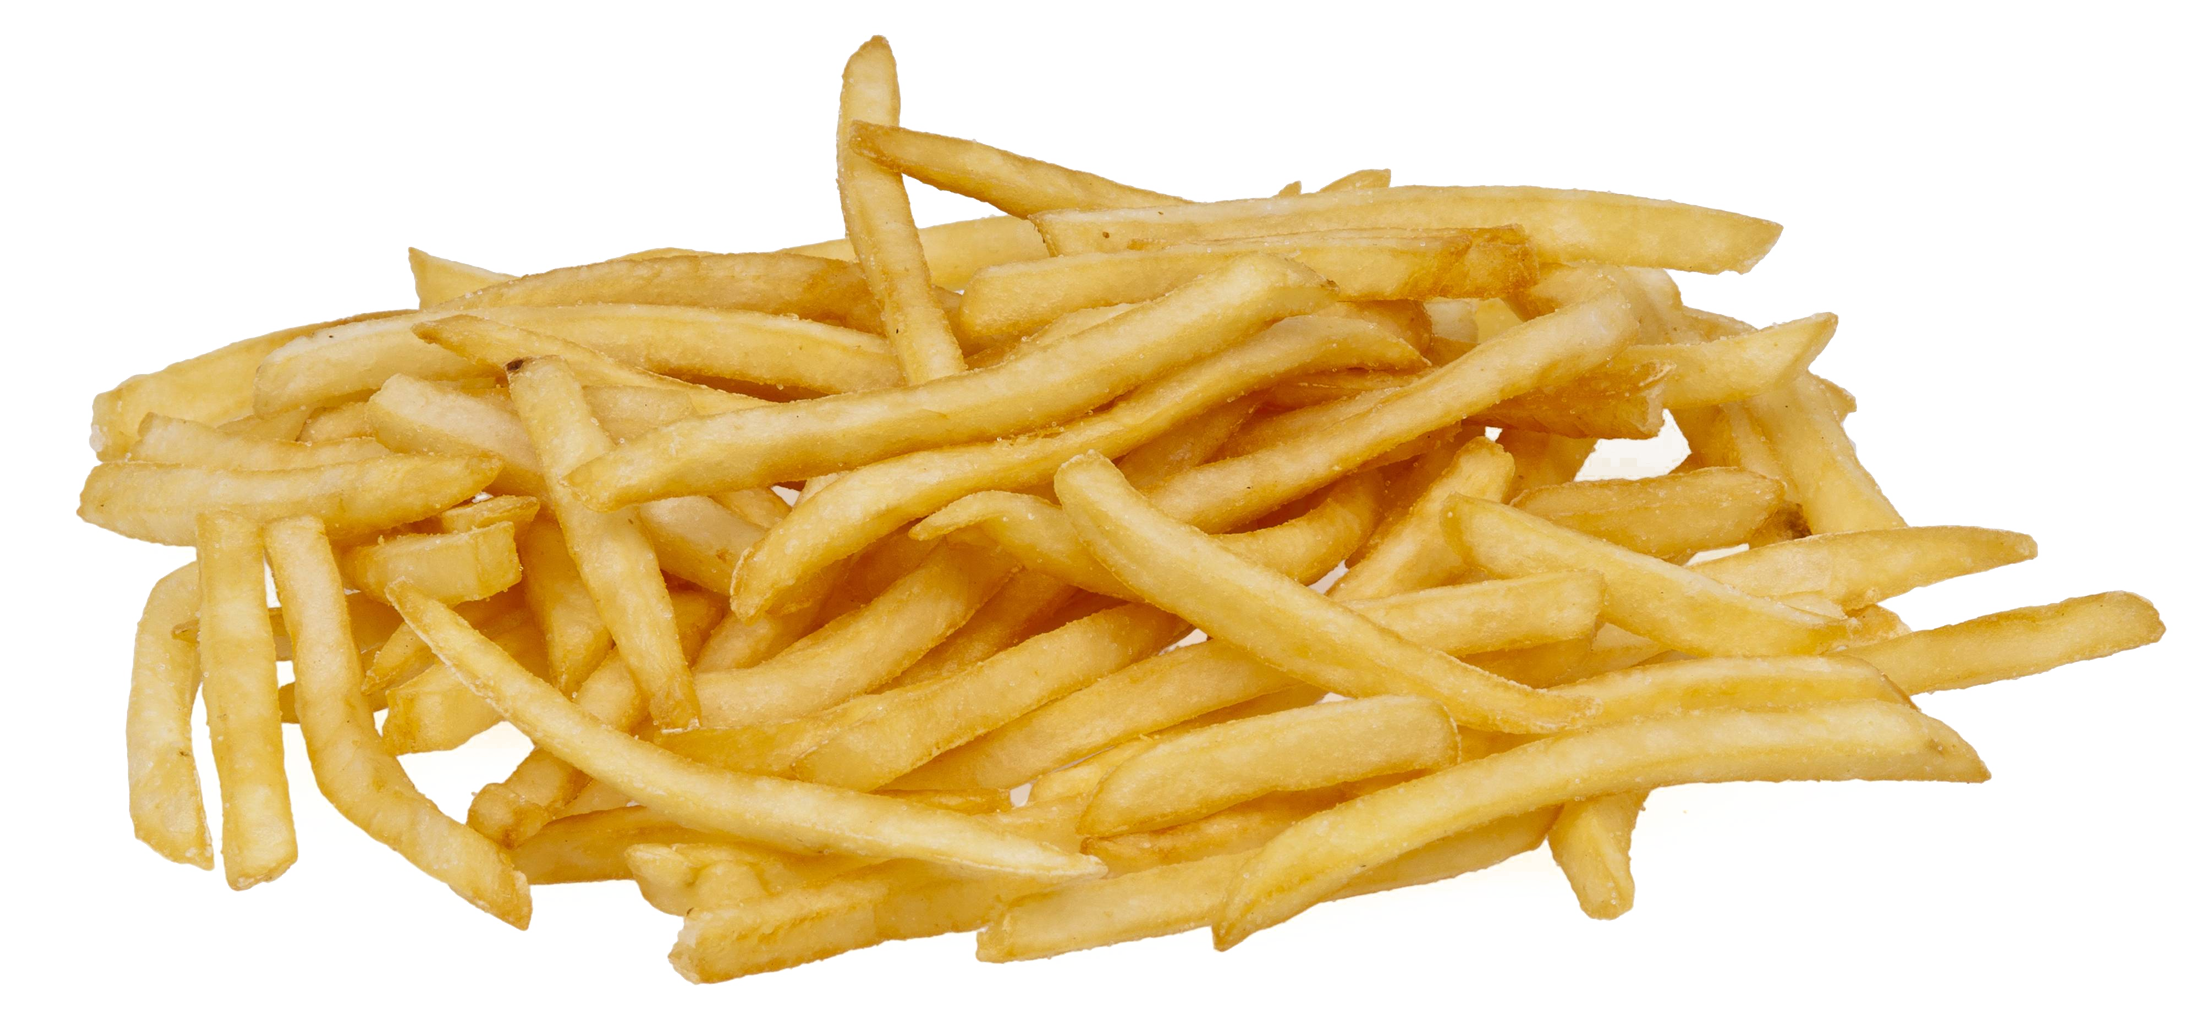 Chips png. Hd mart